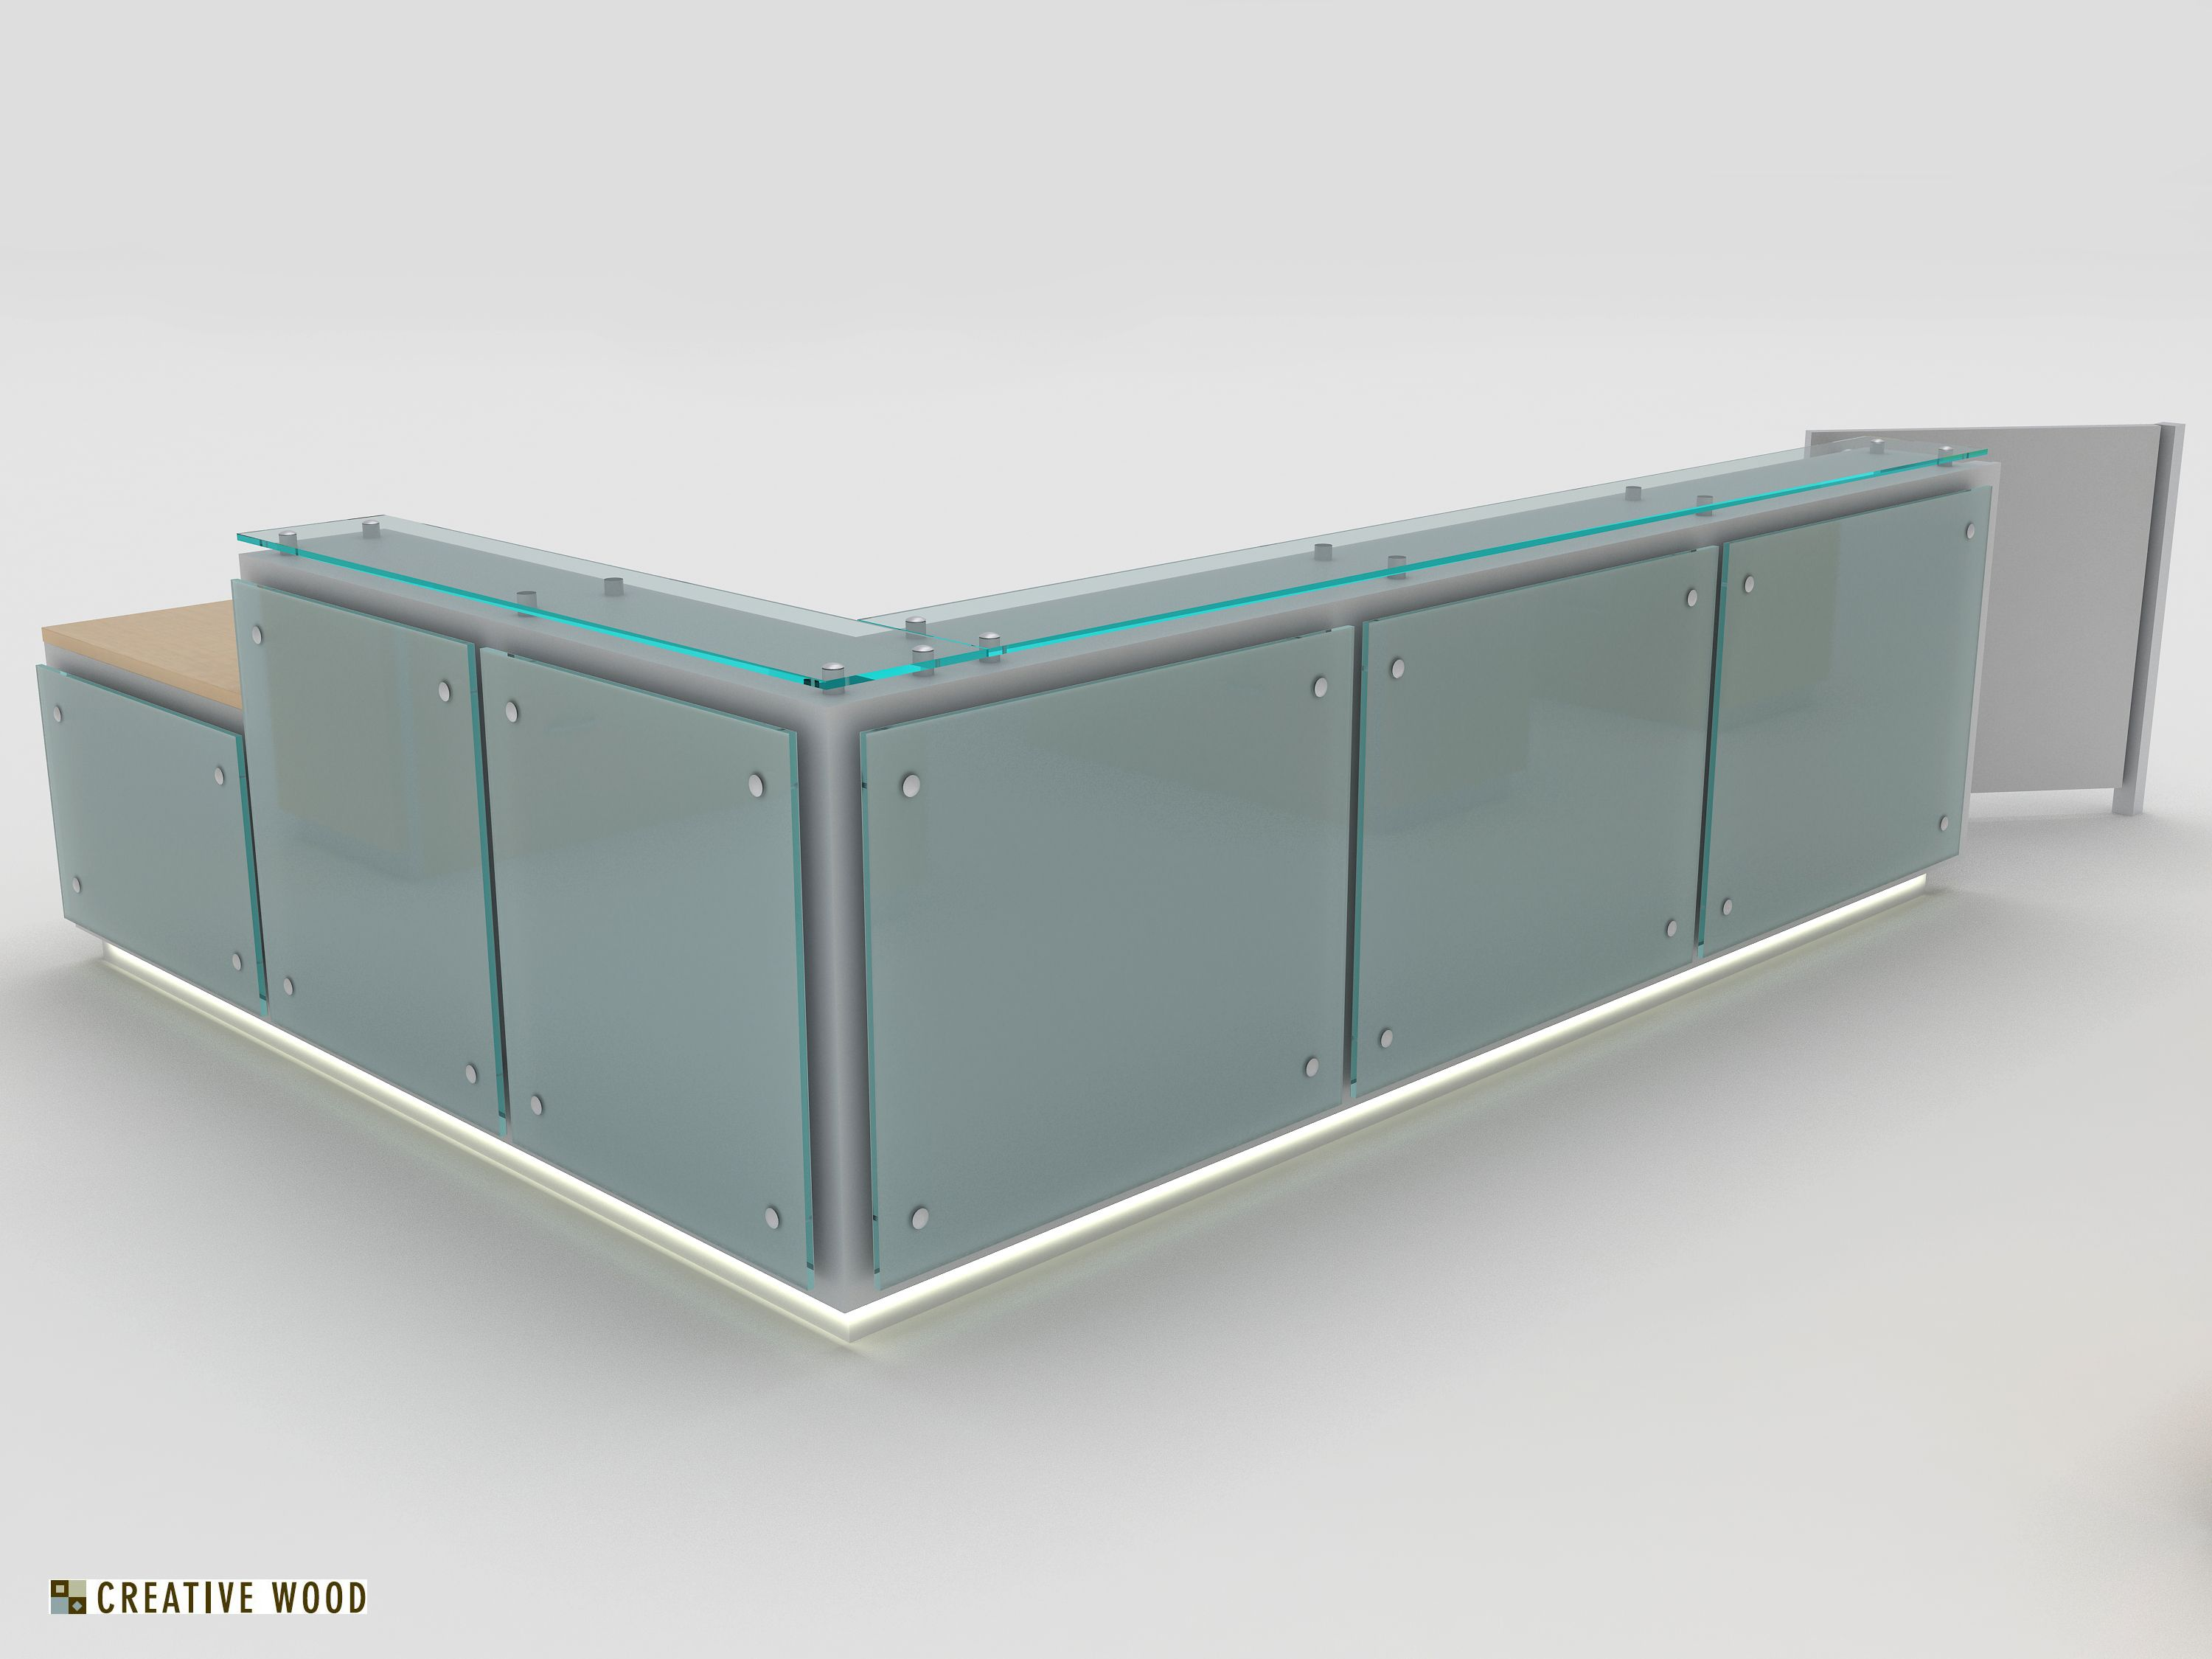 Home gt reception desks gt 8 curved maple glass top reception desk - Luma Steel Reception Desk With Floating Glass Panels And Recessed Led Toe Kick Light Reception Desksglass Panelsoffice Furniturereceptionsto